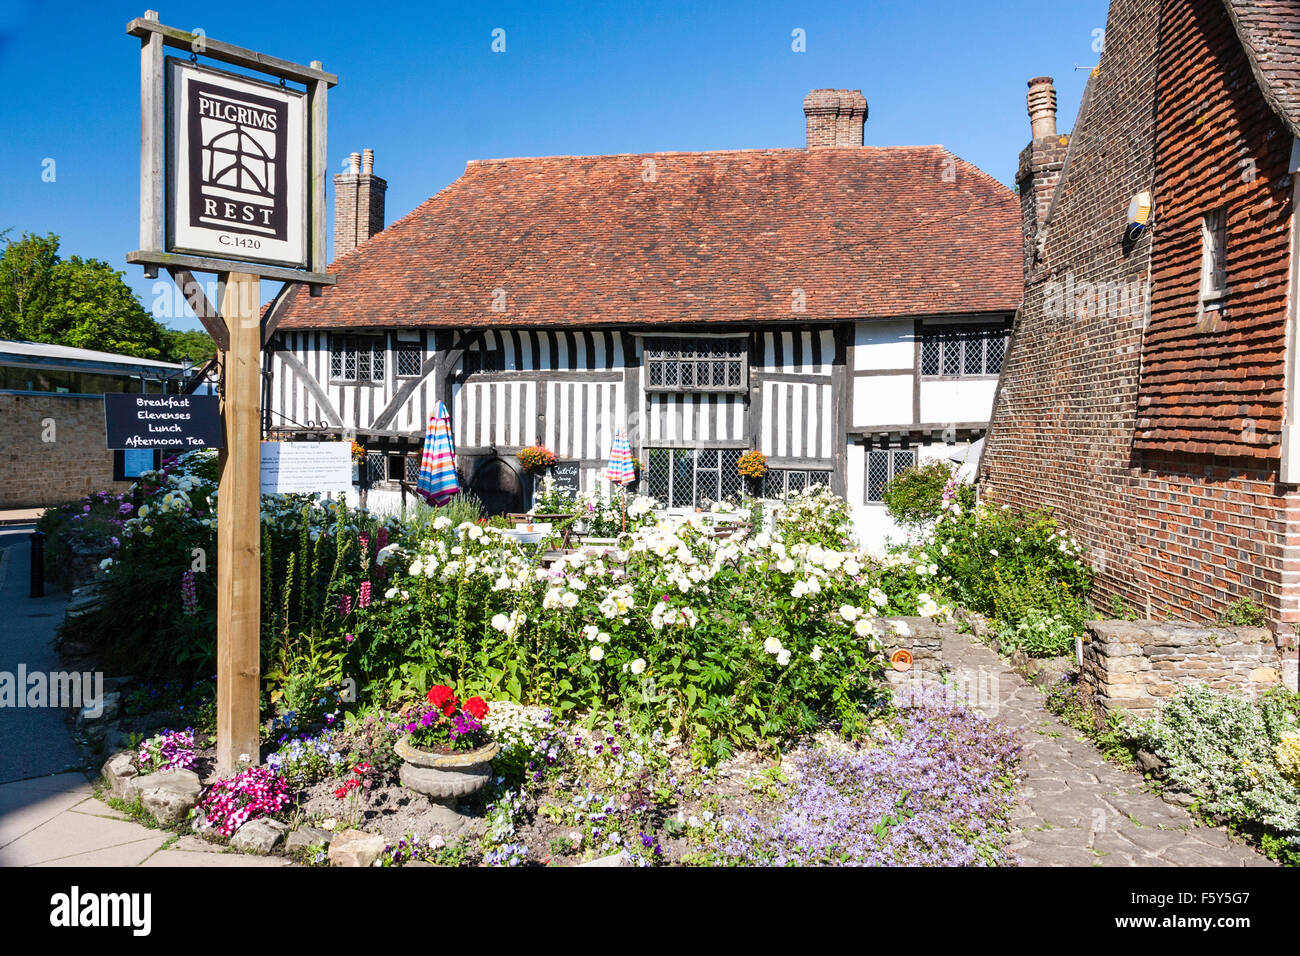 England, Hastings, Battle. Pilgrims rest, original 1420 pilgrims rest house building now converted to a home and Stock Photo